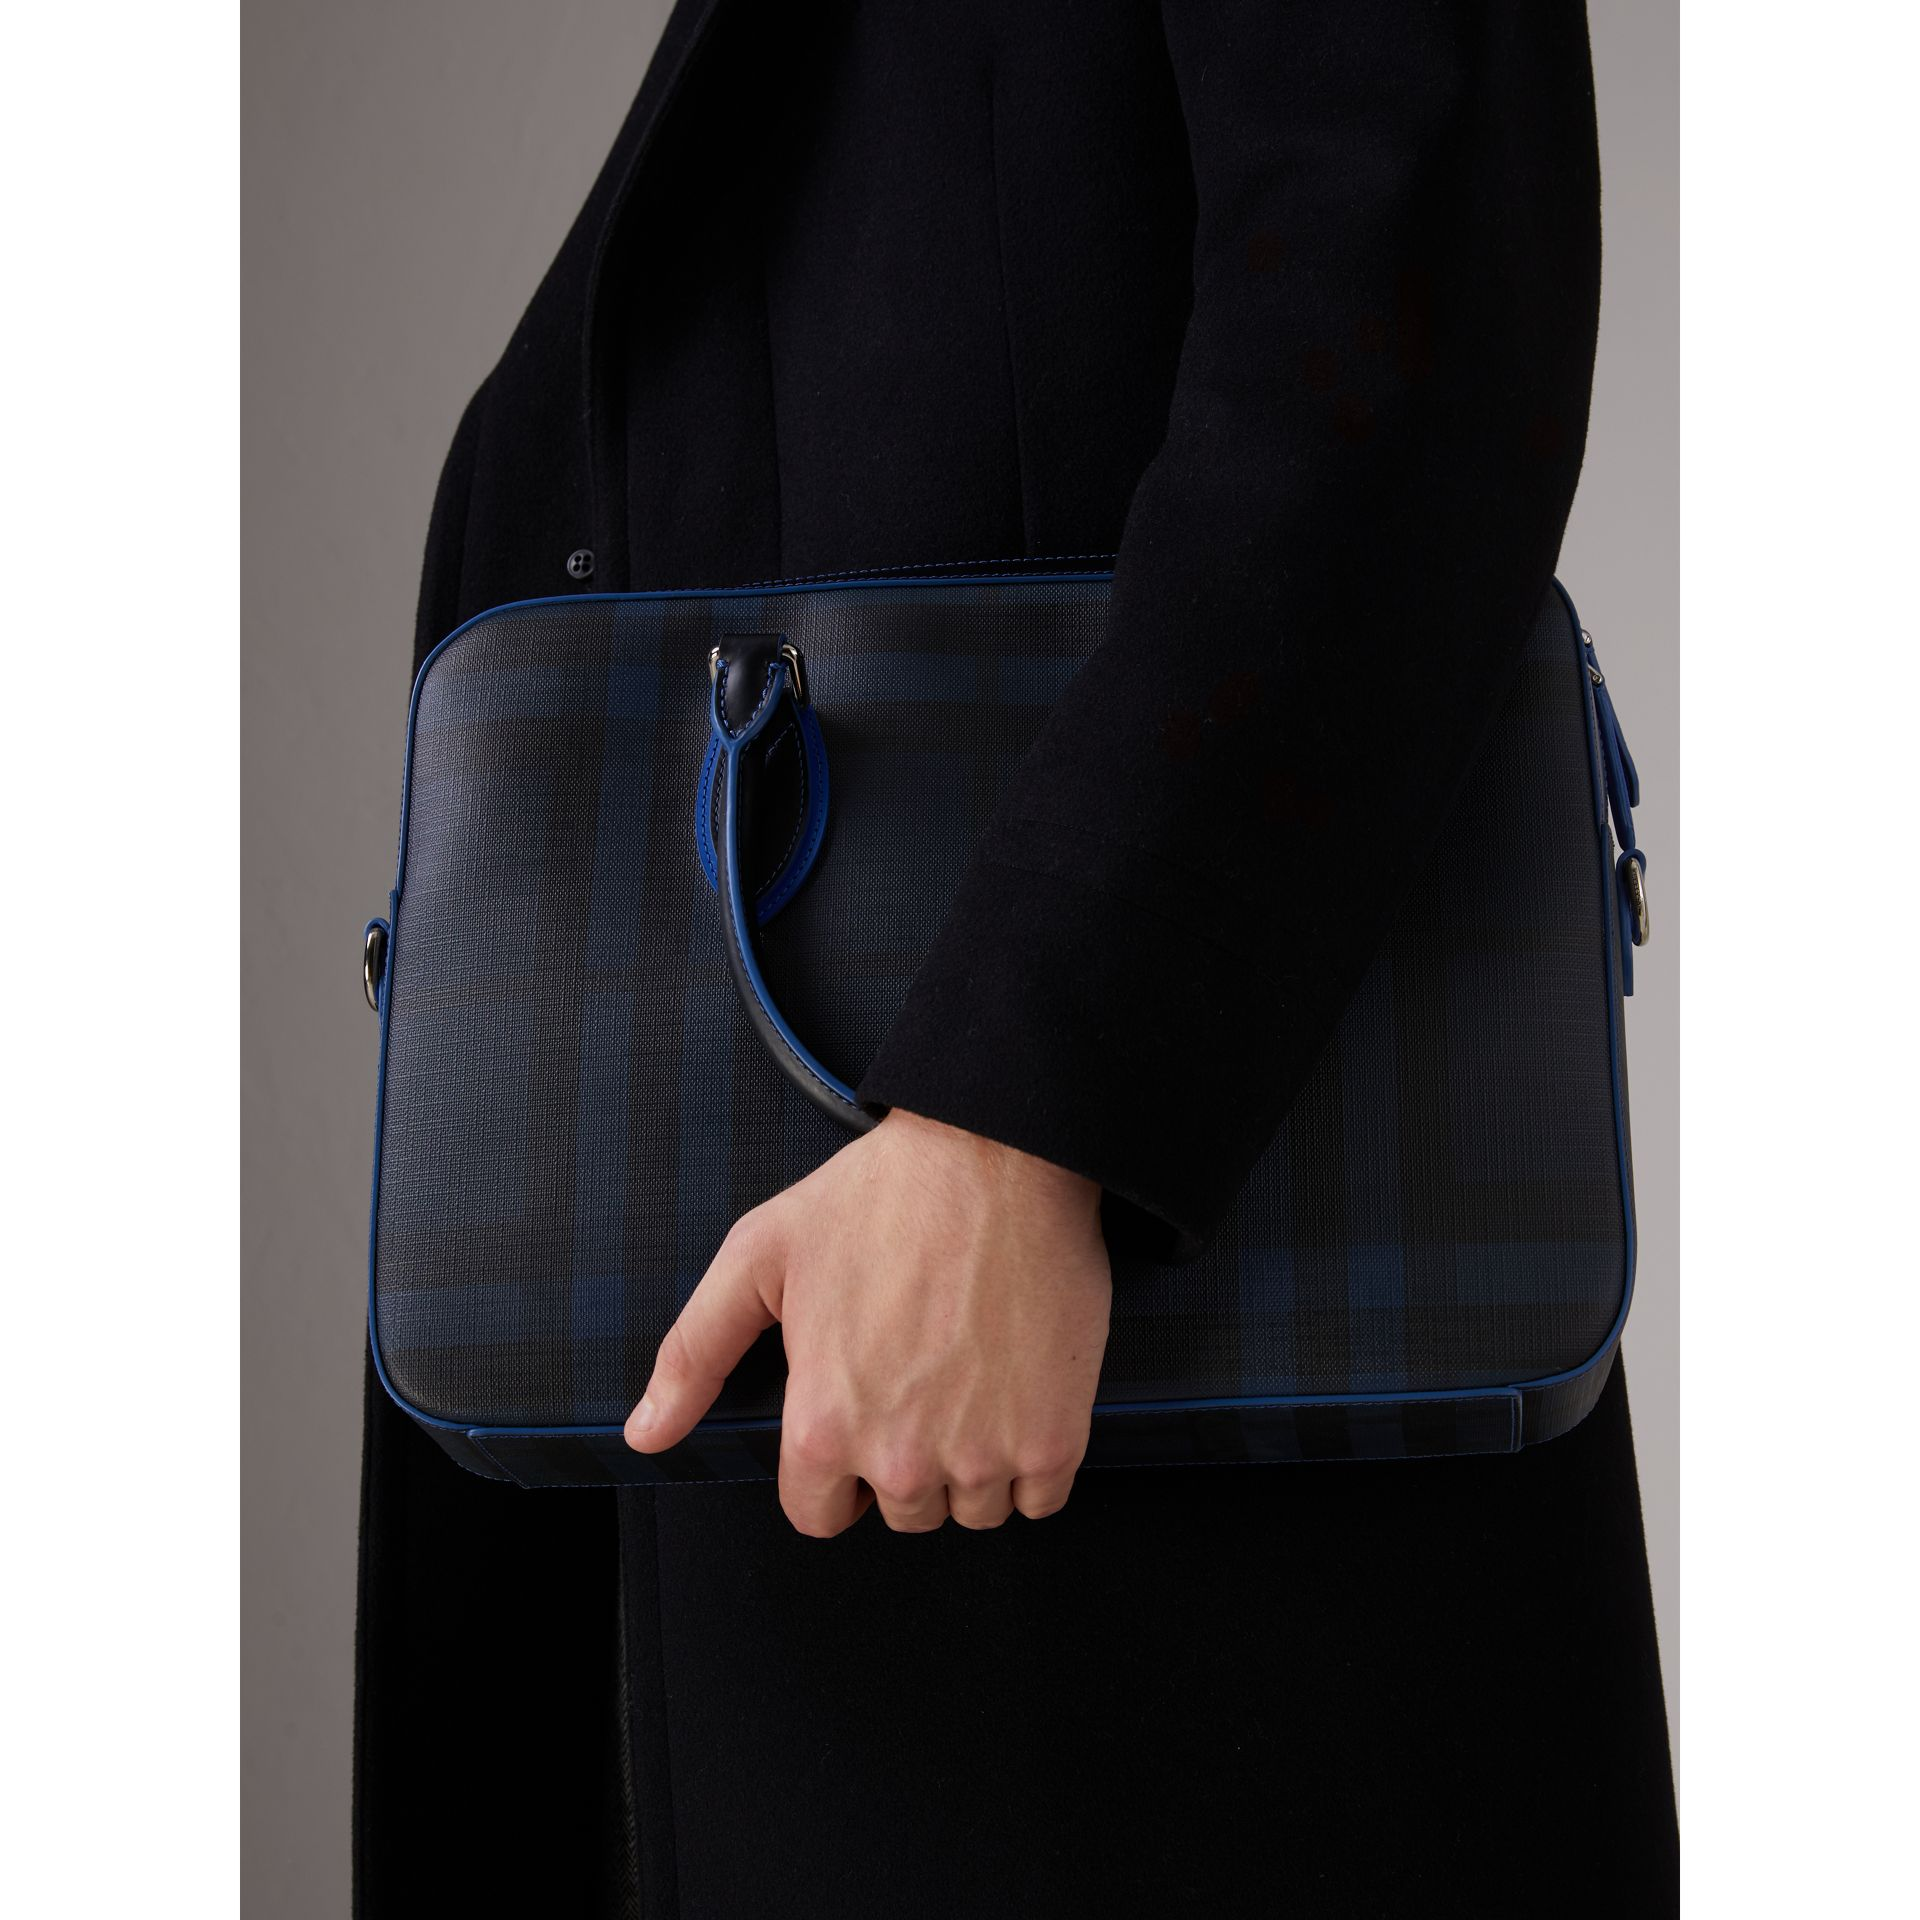 Medium Leather Trim London Check Briefcase in Navy/blue - Men | Burberry - gallery image 2